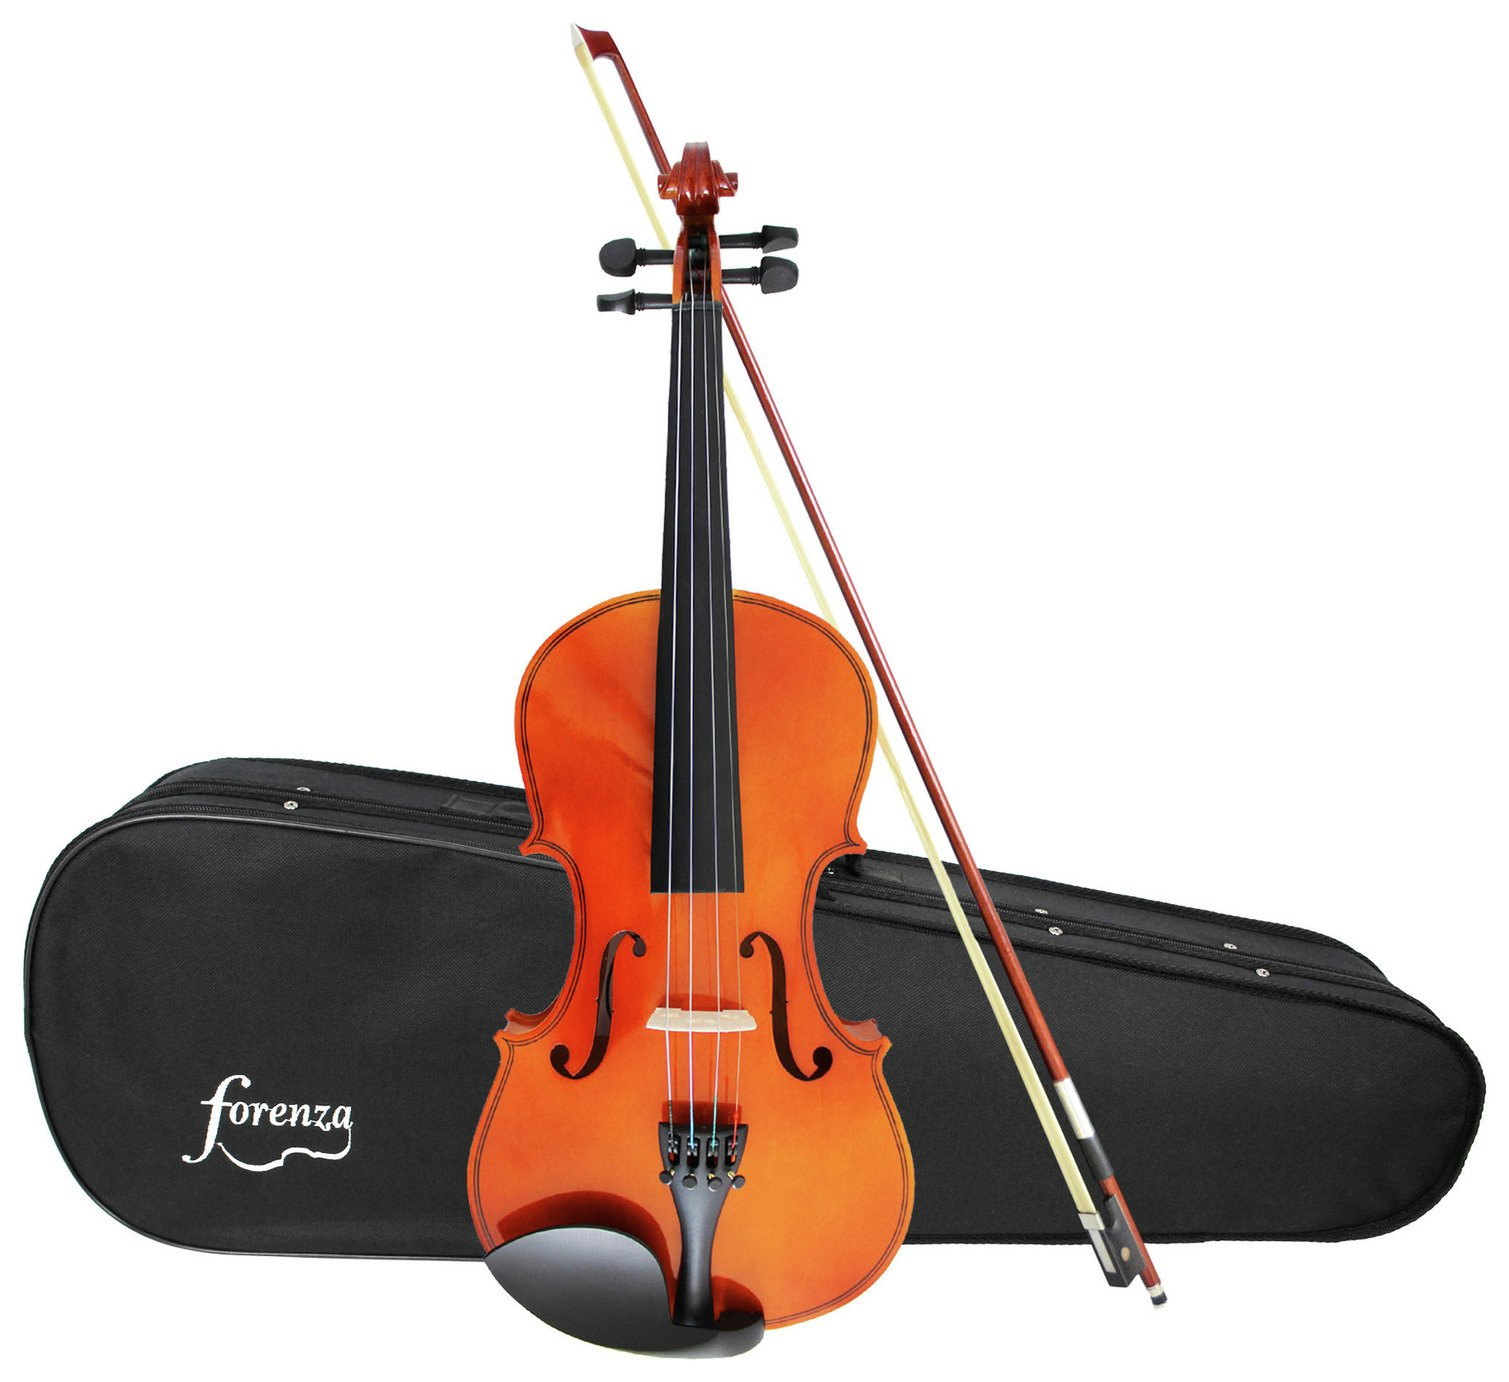 Forenza Uno Series 3/4 Size Violin Outfit